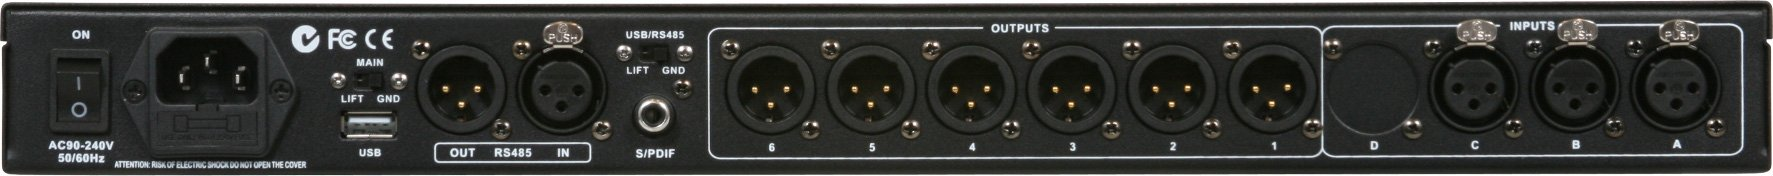 DSPOT 3x6 Digital Signal Processor